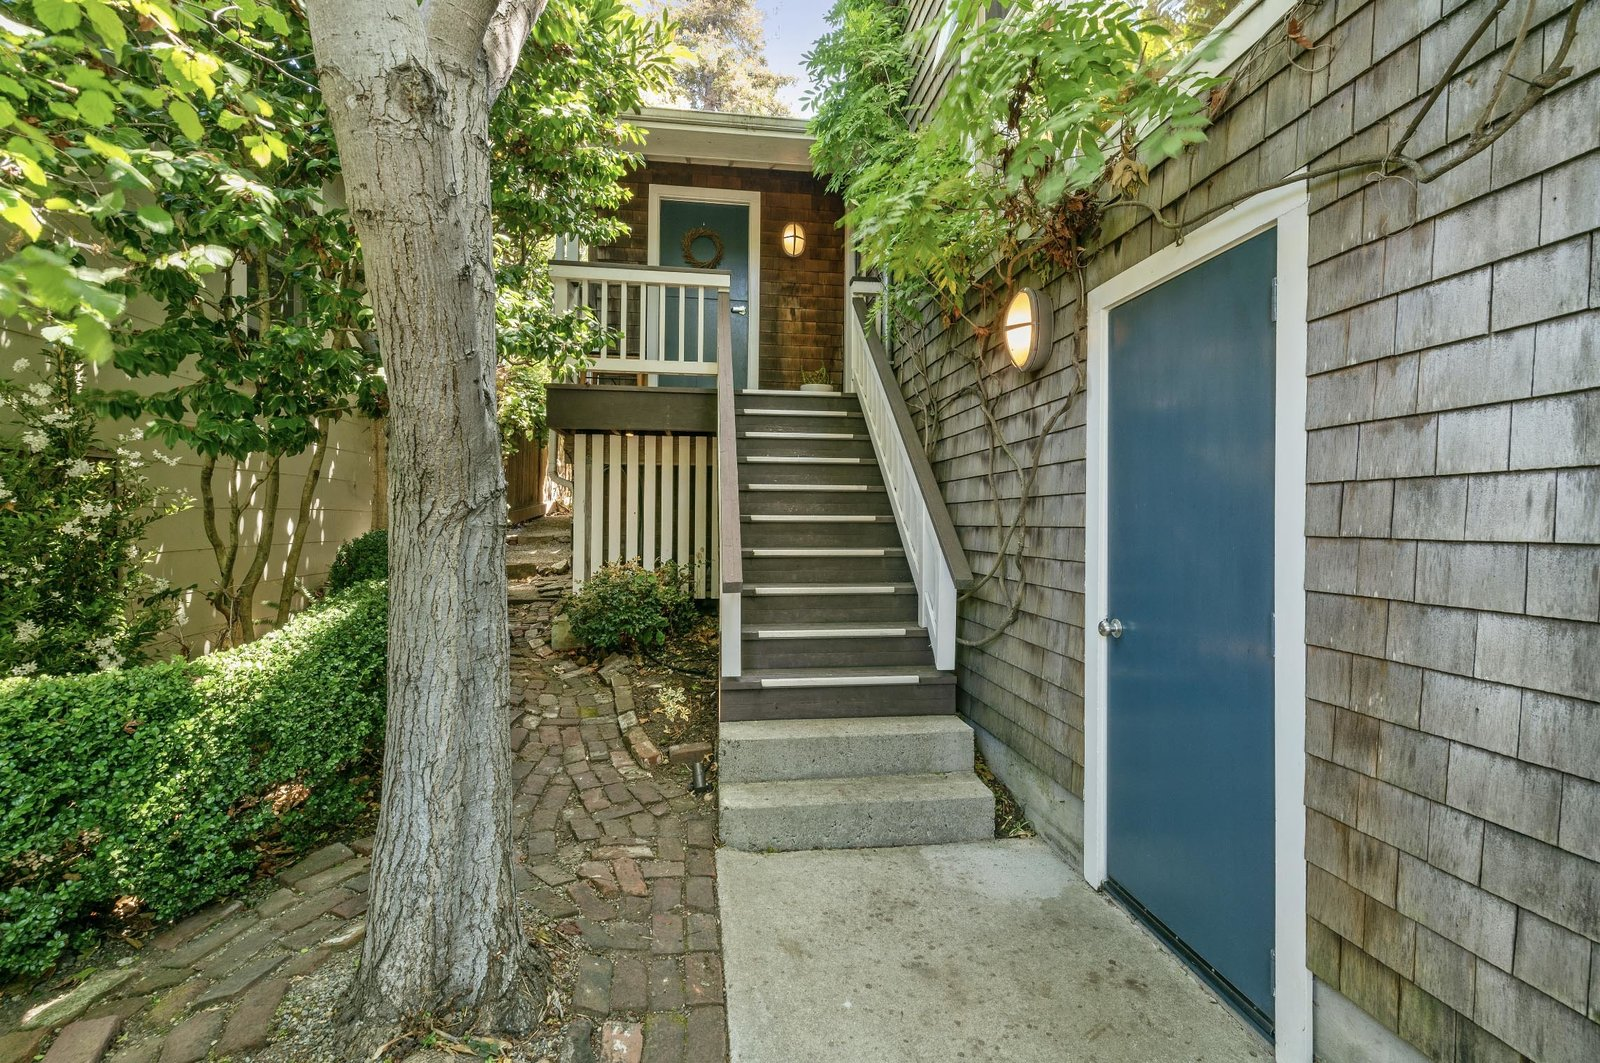 Along the front of the home, steps lead up to the front porch and a door provides access to the attached one-car garage. The property is located minutes away from some of Potrero Hill's most popular cafes and shops.  Photo 13 of 13 in An Idyllic Cottage With a Garden Studio Seeks $1.8M in San Francisco